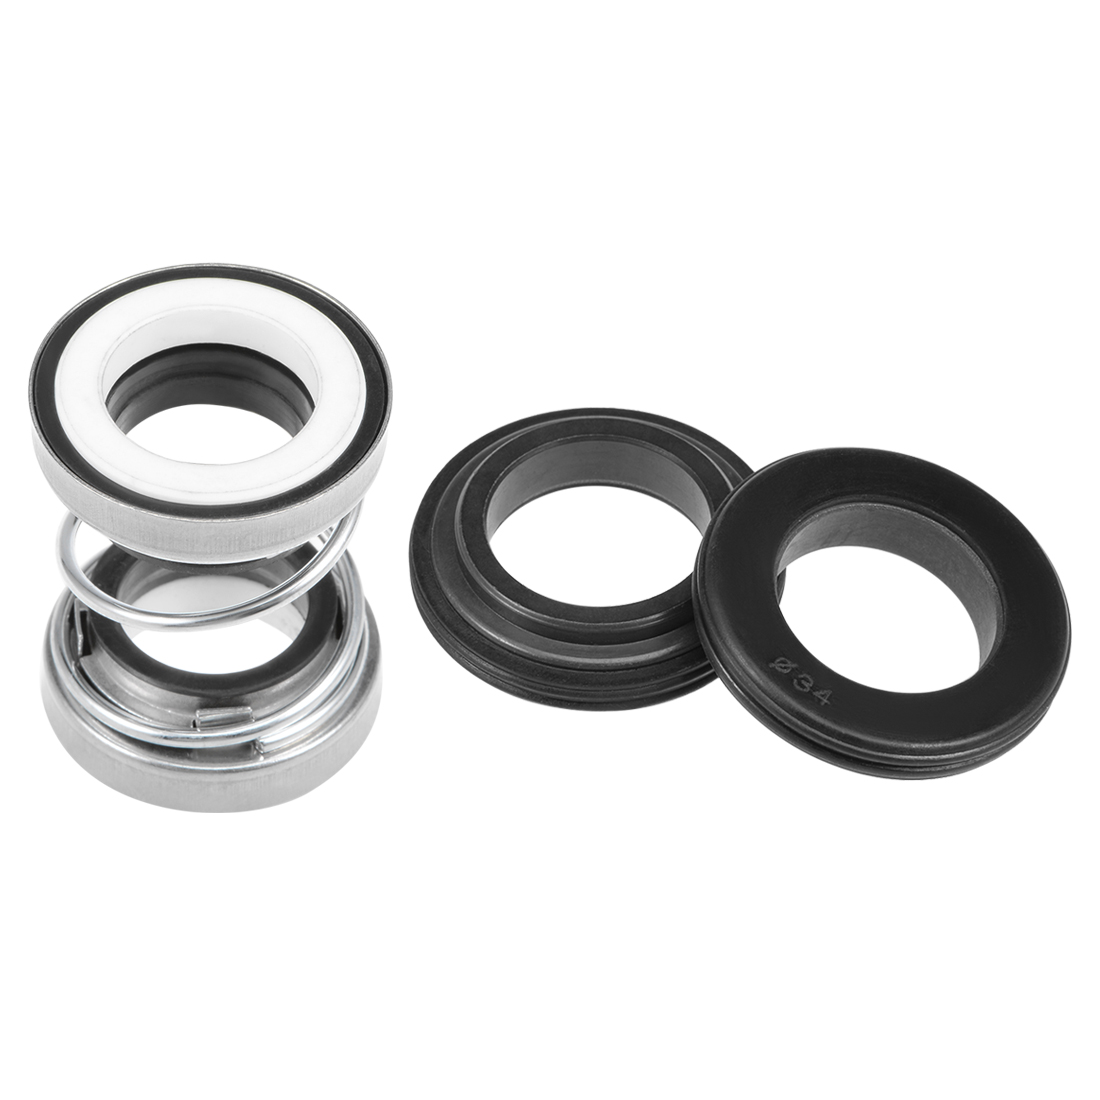 Mechanical Shaft Seal Replacement for Pool Spa Pump 202-18 - image 3 de 3